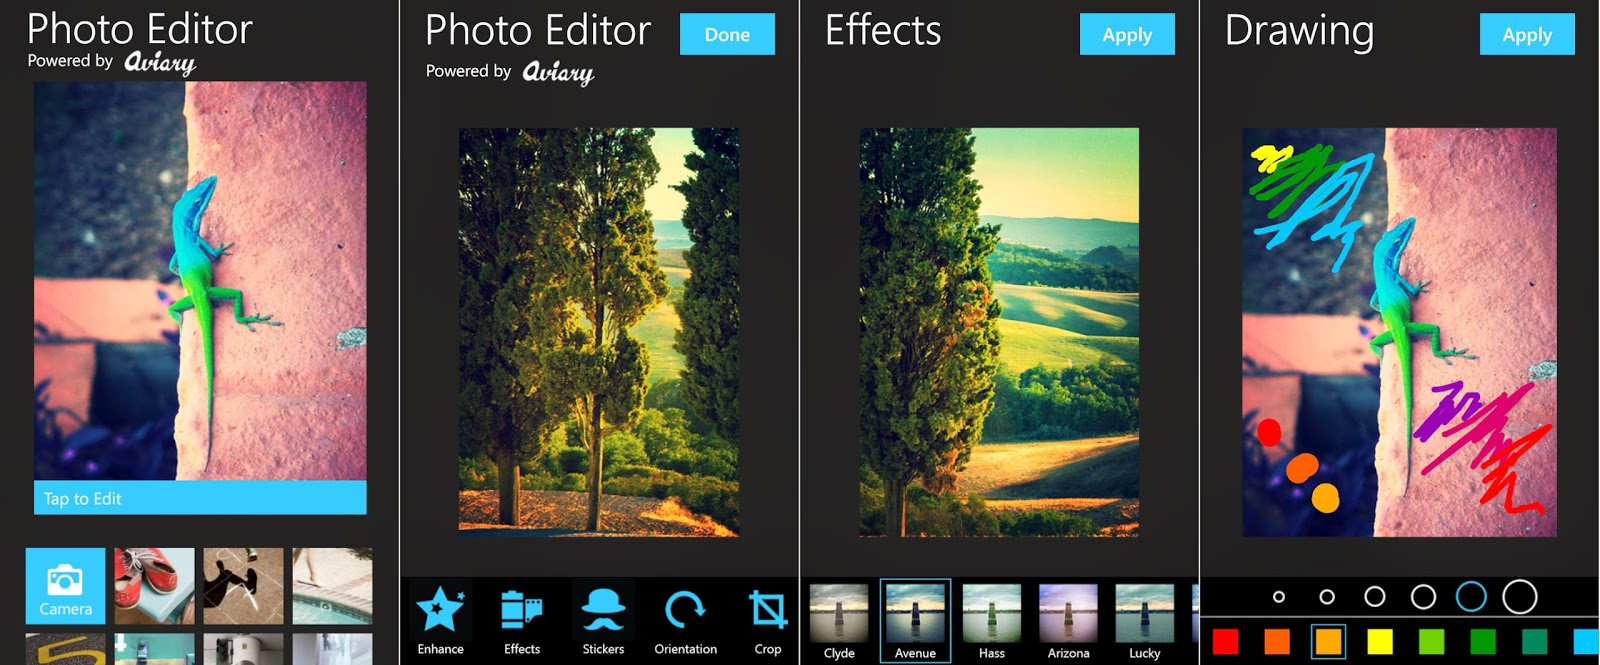 Top 10 free photo editing apps for android users Free photo software